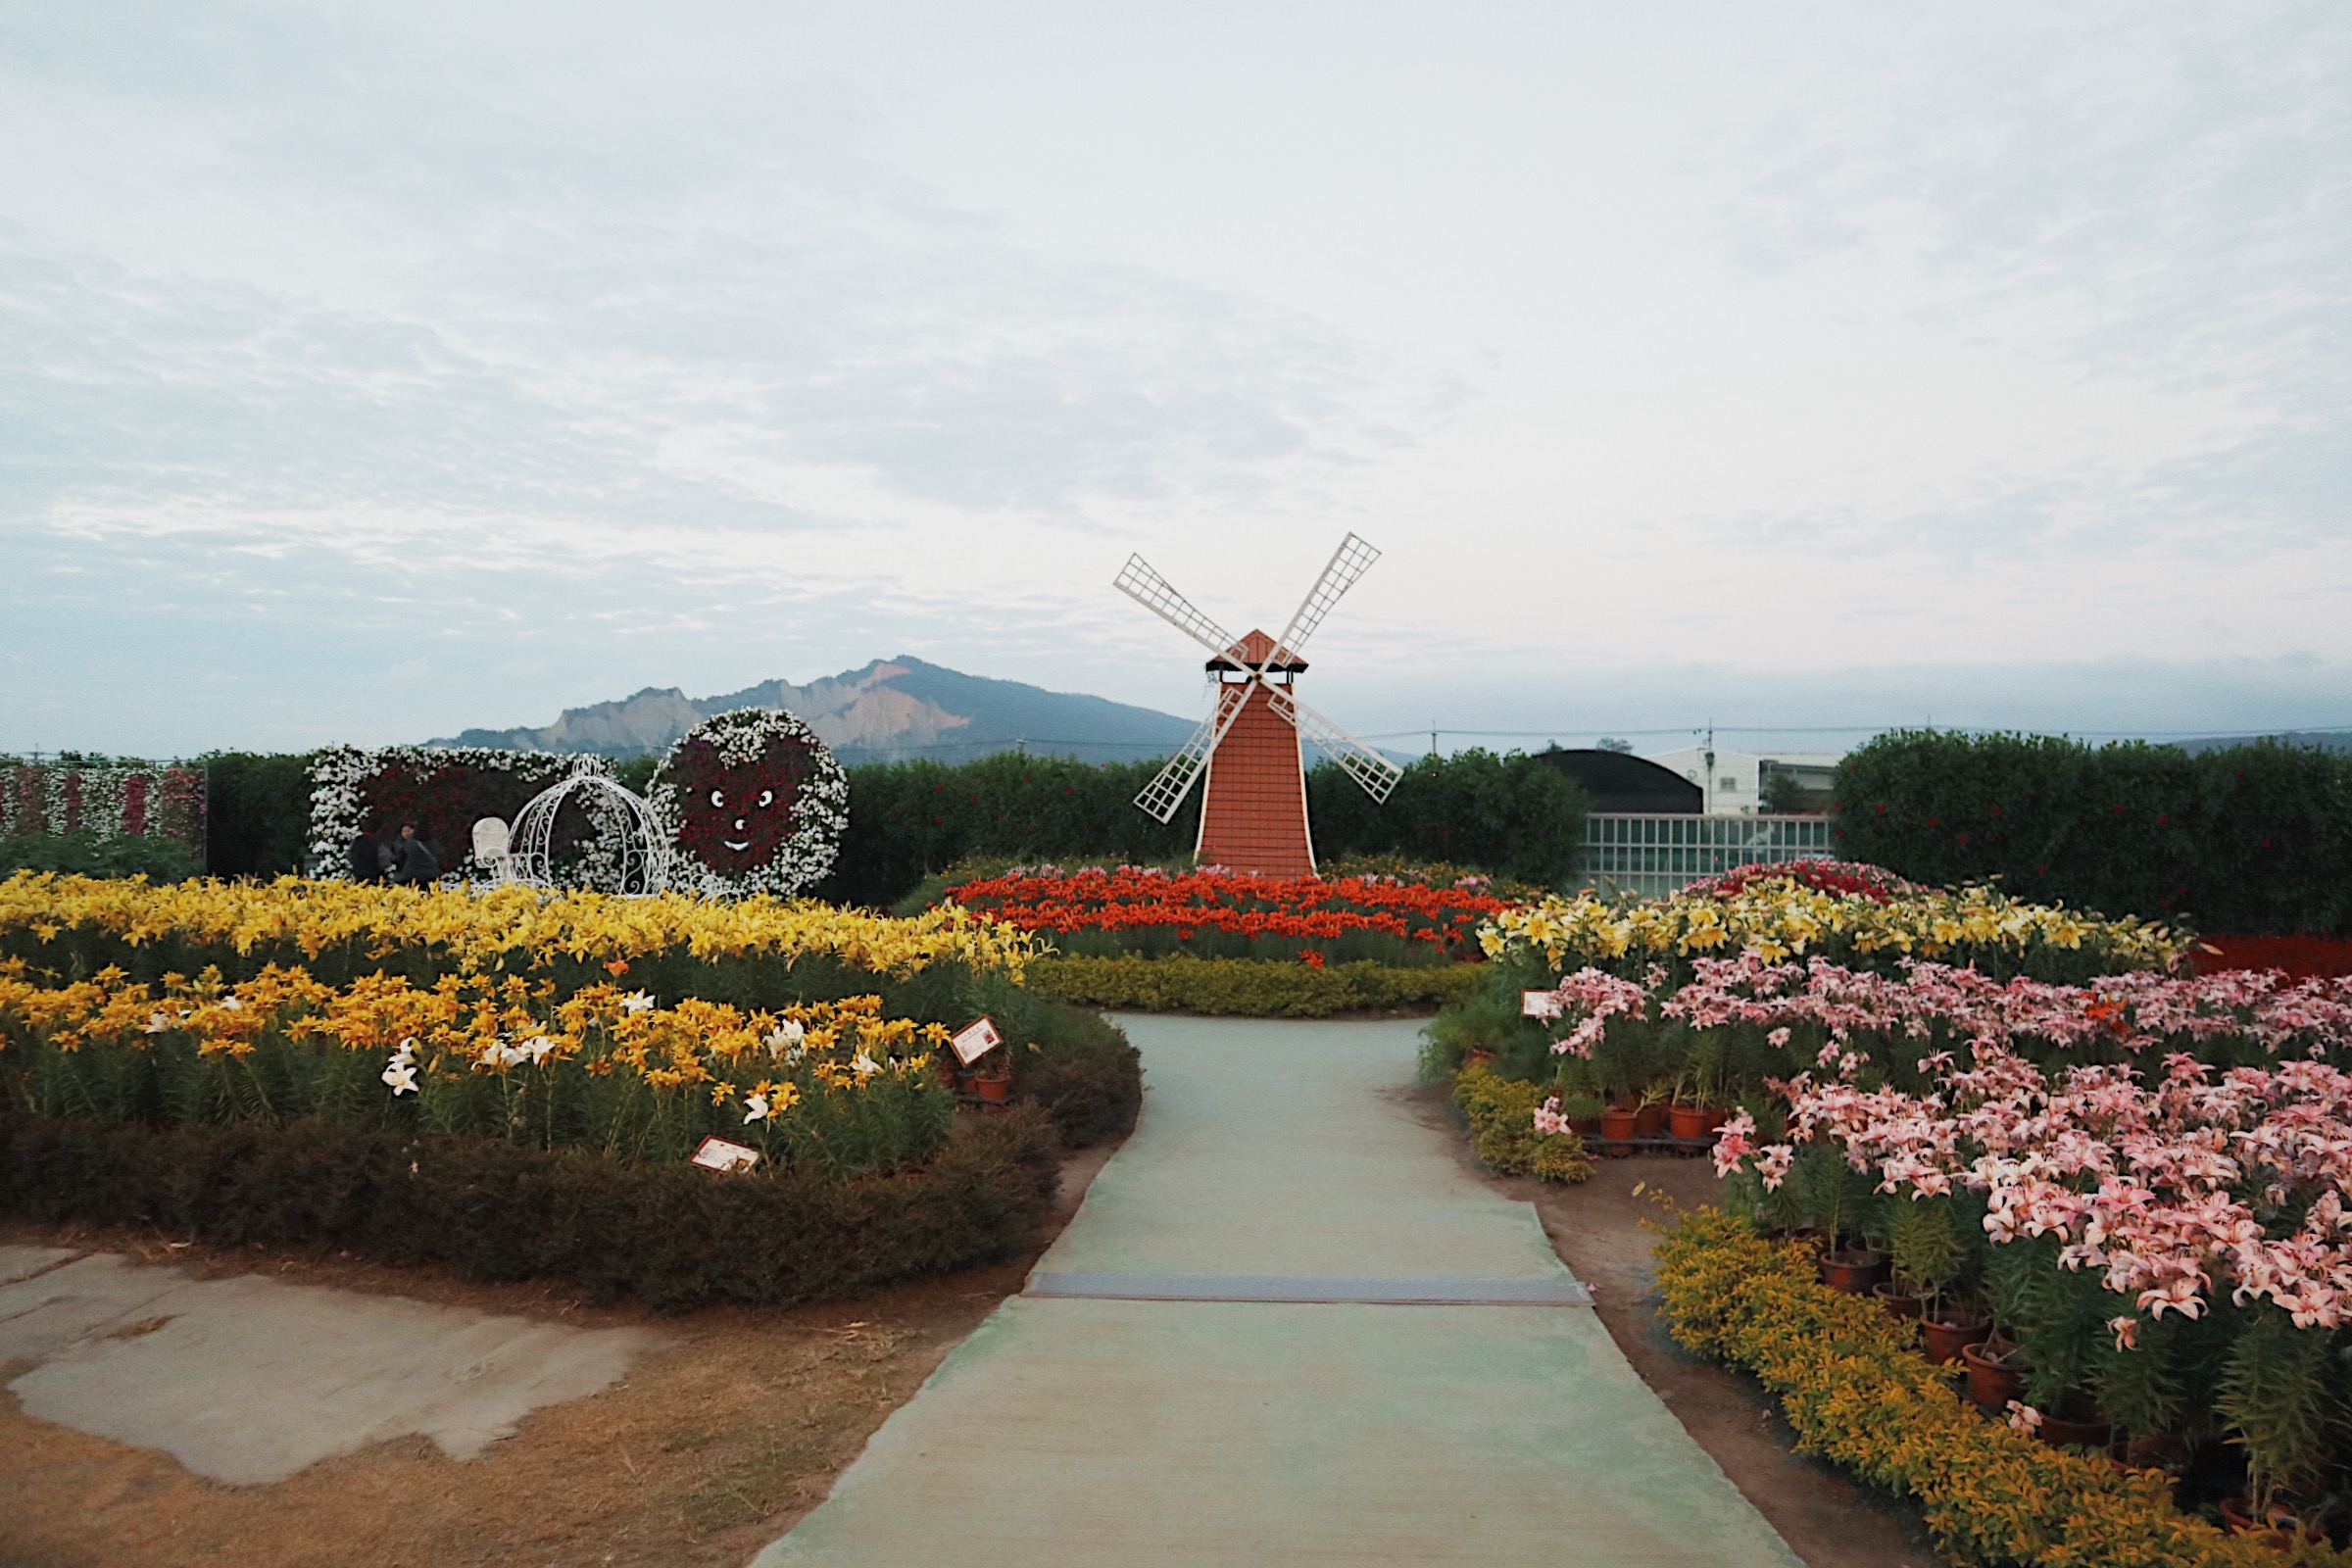 THE WINDMILL. This is just one of the many attractions here in Houli Flower Farm.